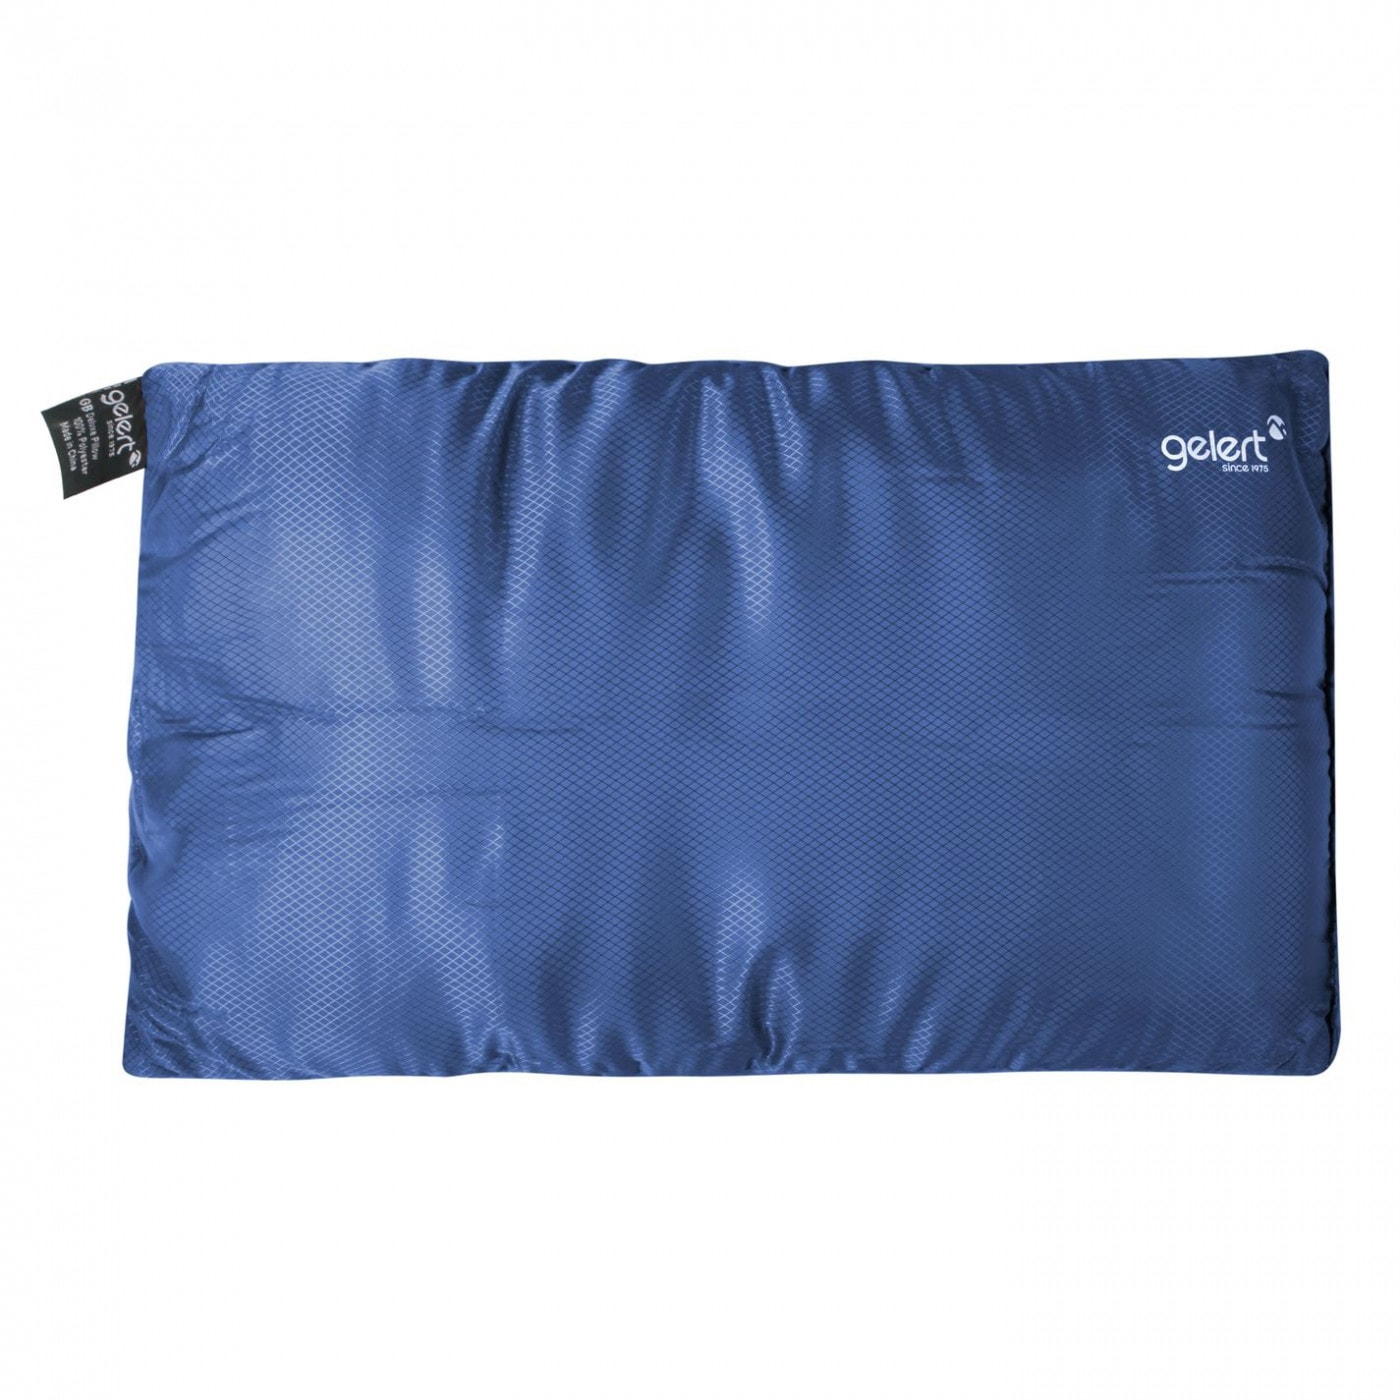 Gelert Camping Pillow